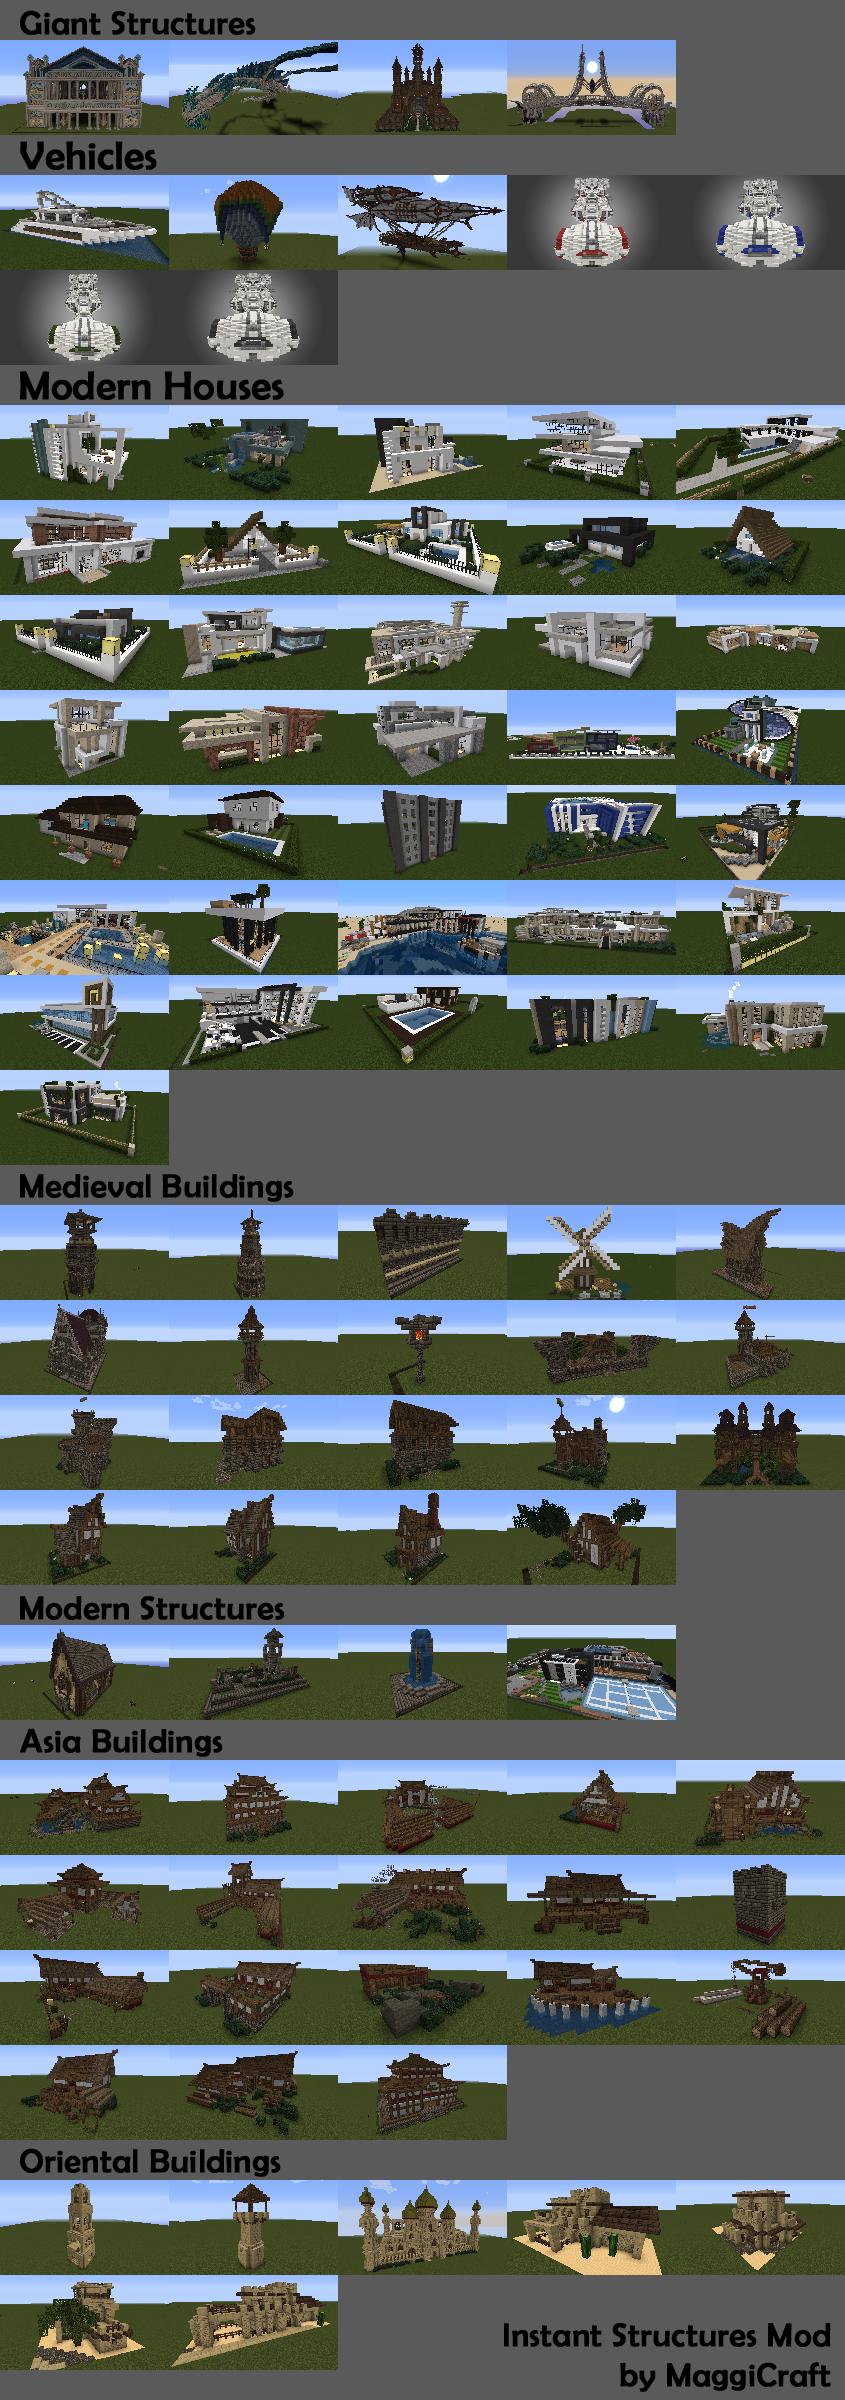 https://minecraftmodz.com/wp-content/uploads/2016/12/instant-structures-mod-by-maggicraft-1-111-10-21-7-10.png